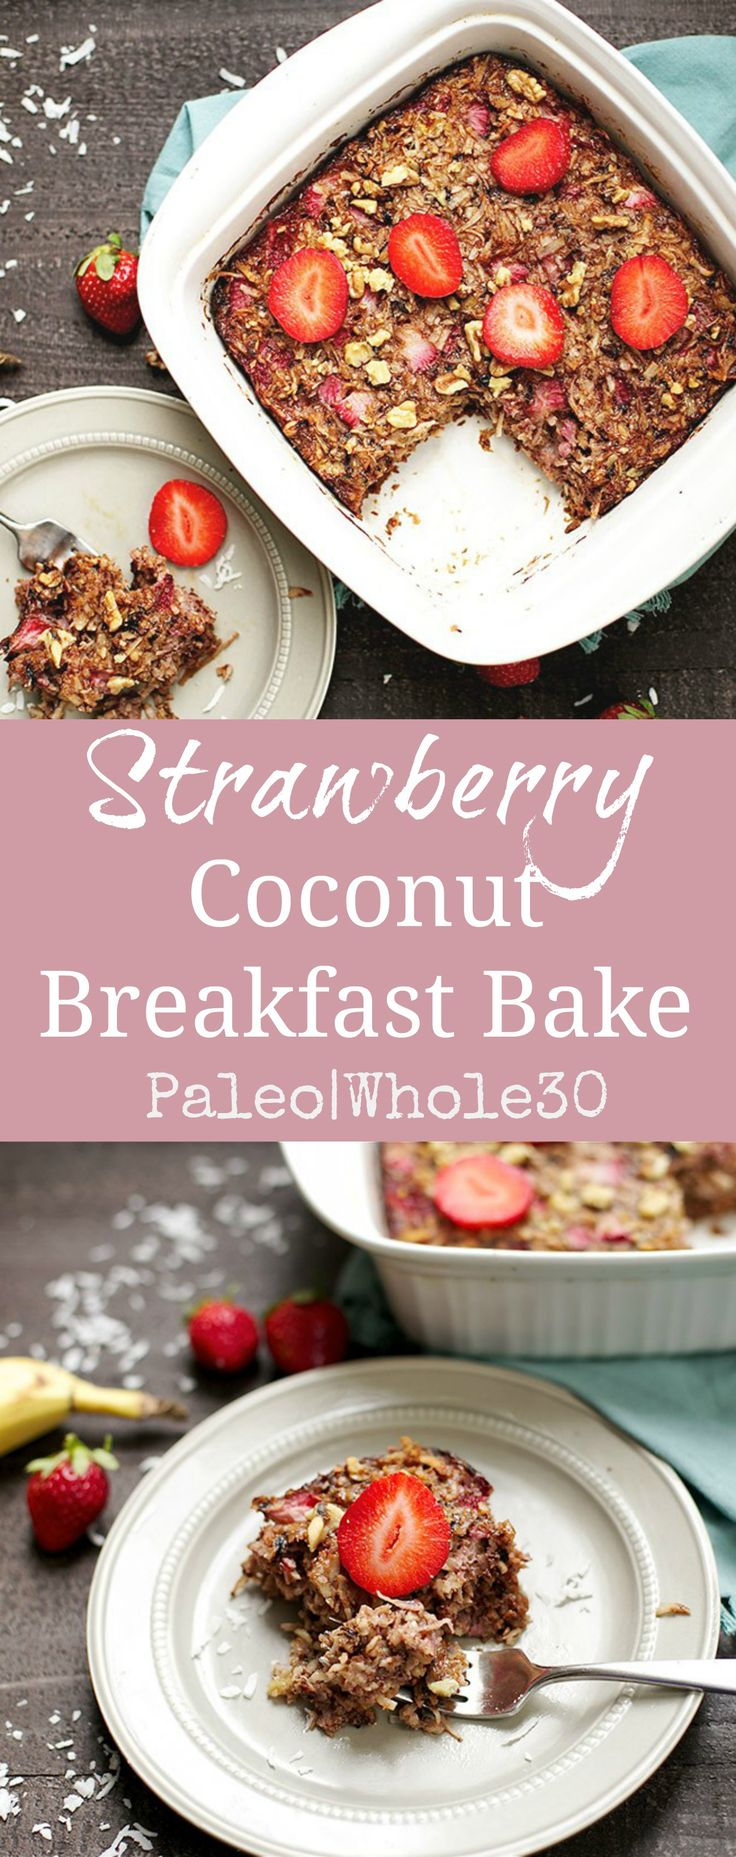 You'll love this super easy and delicious breakfast as a healthy alternative!